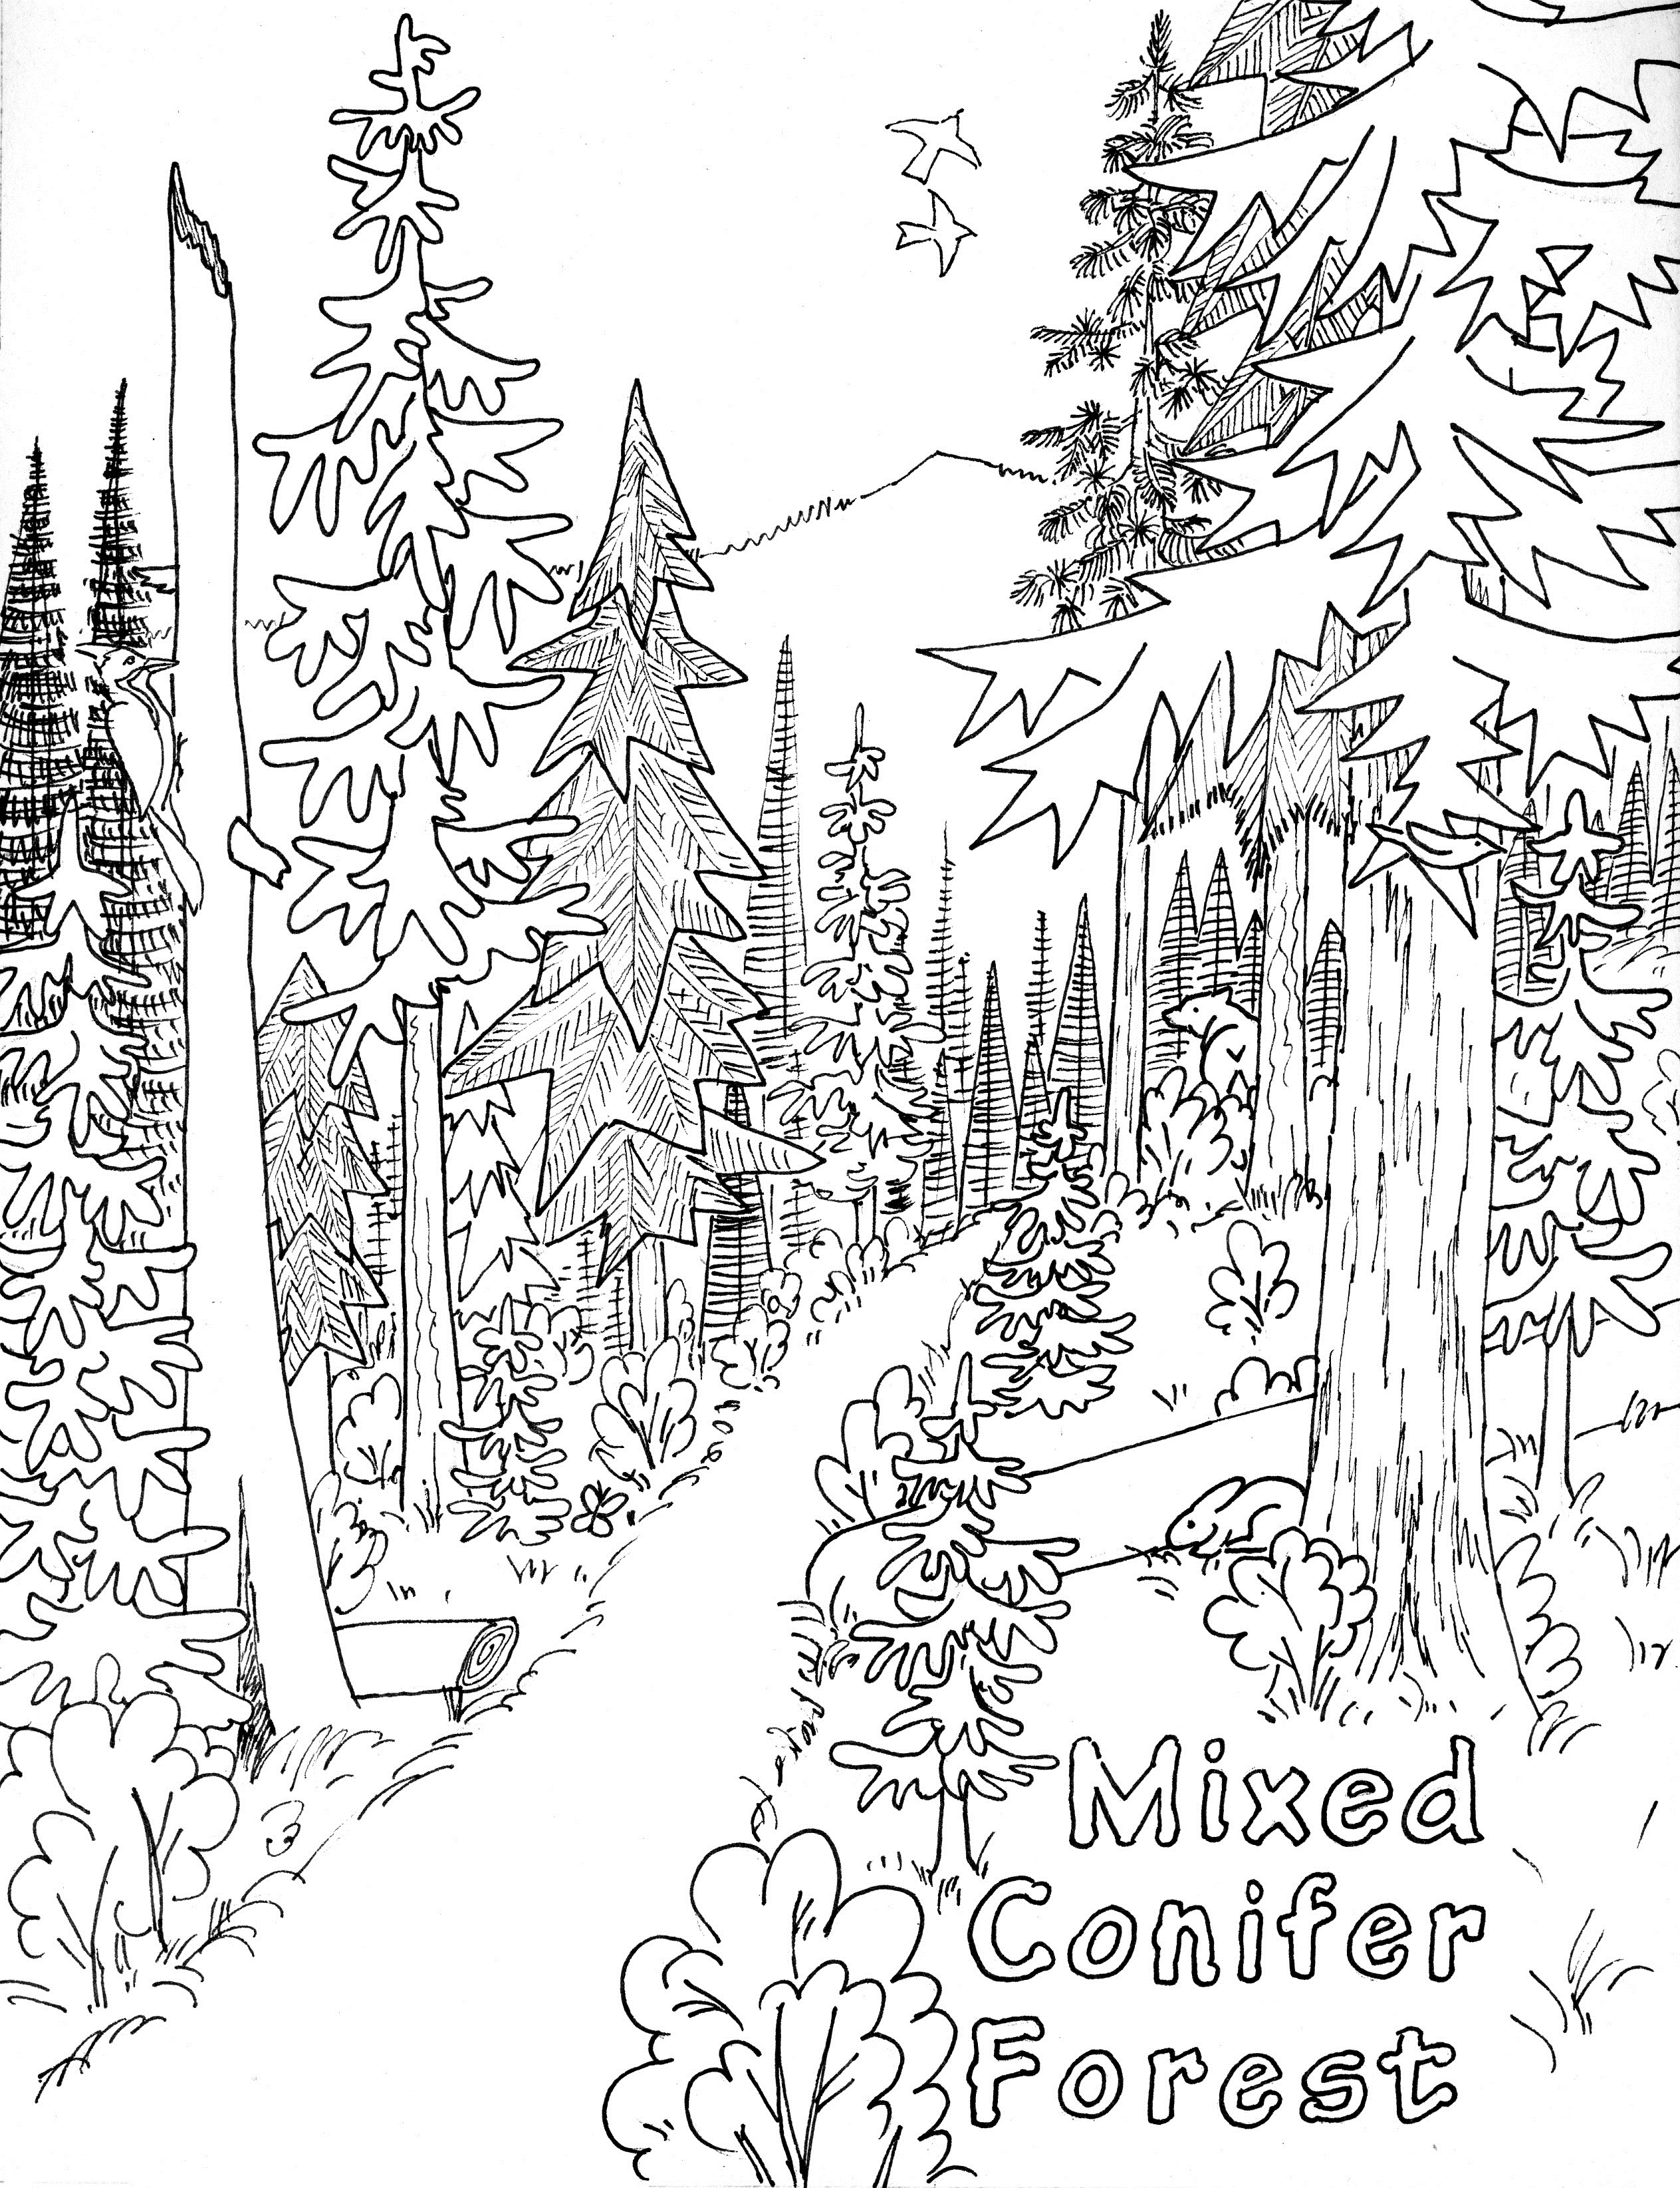 coloring nature images nature around the house coloring pages coloring home images nature coloring